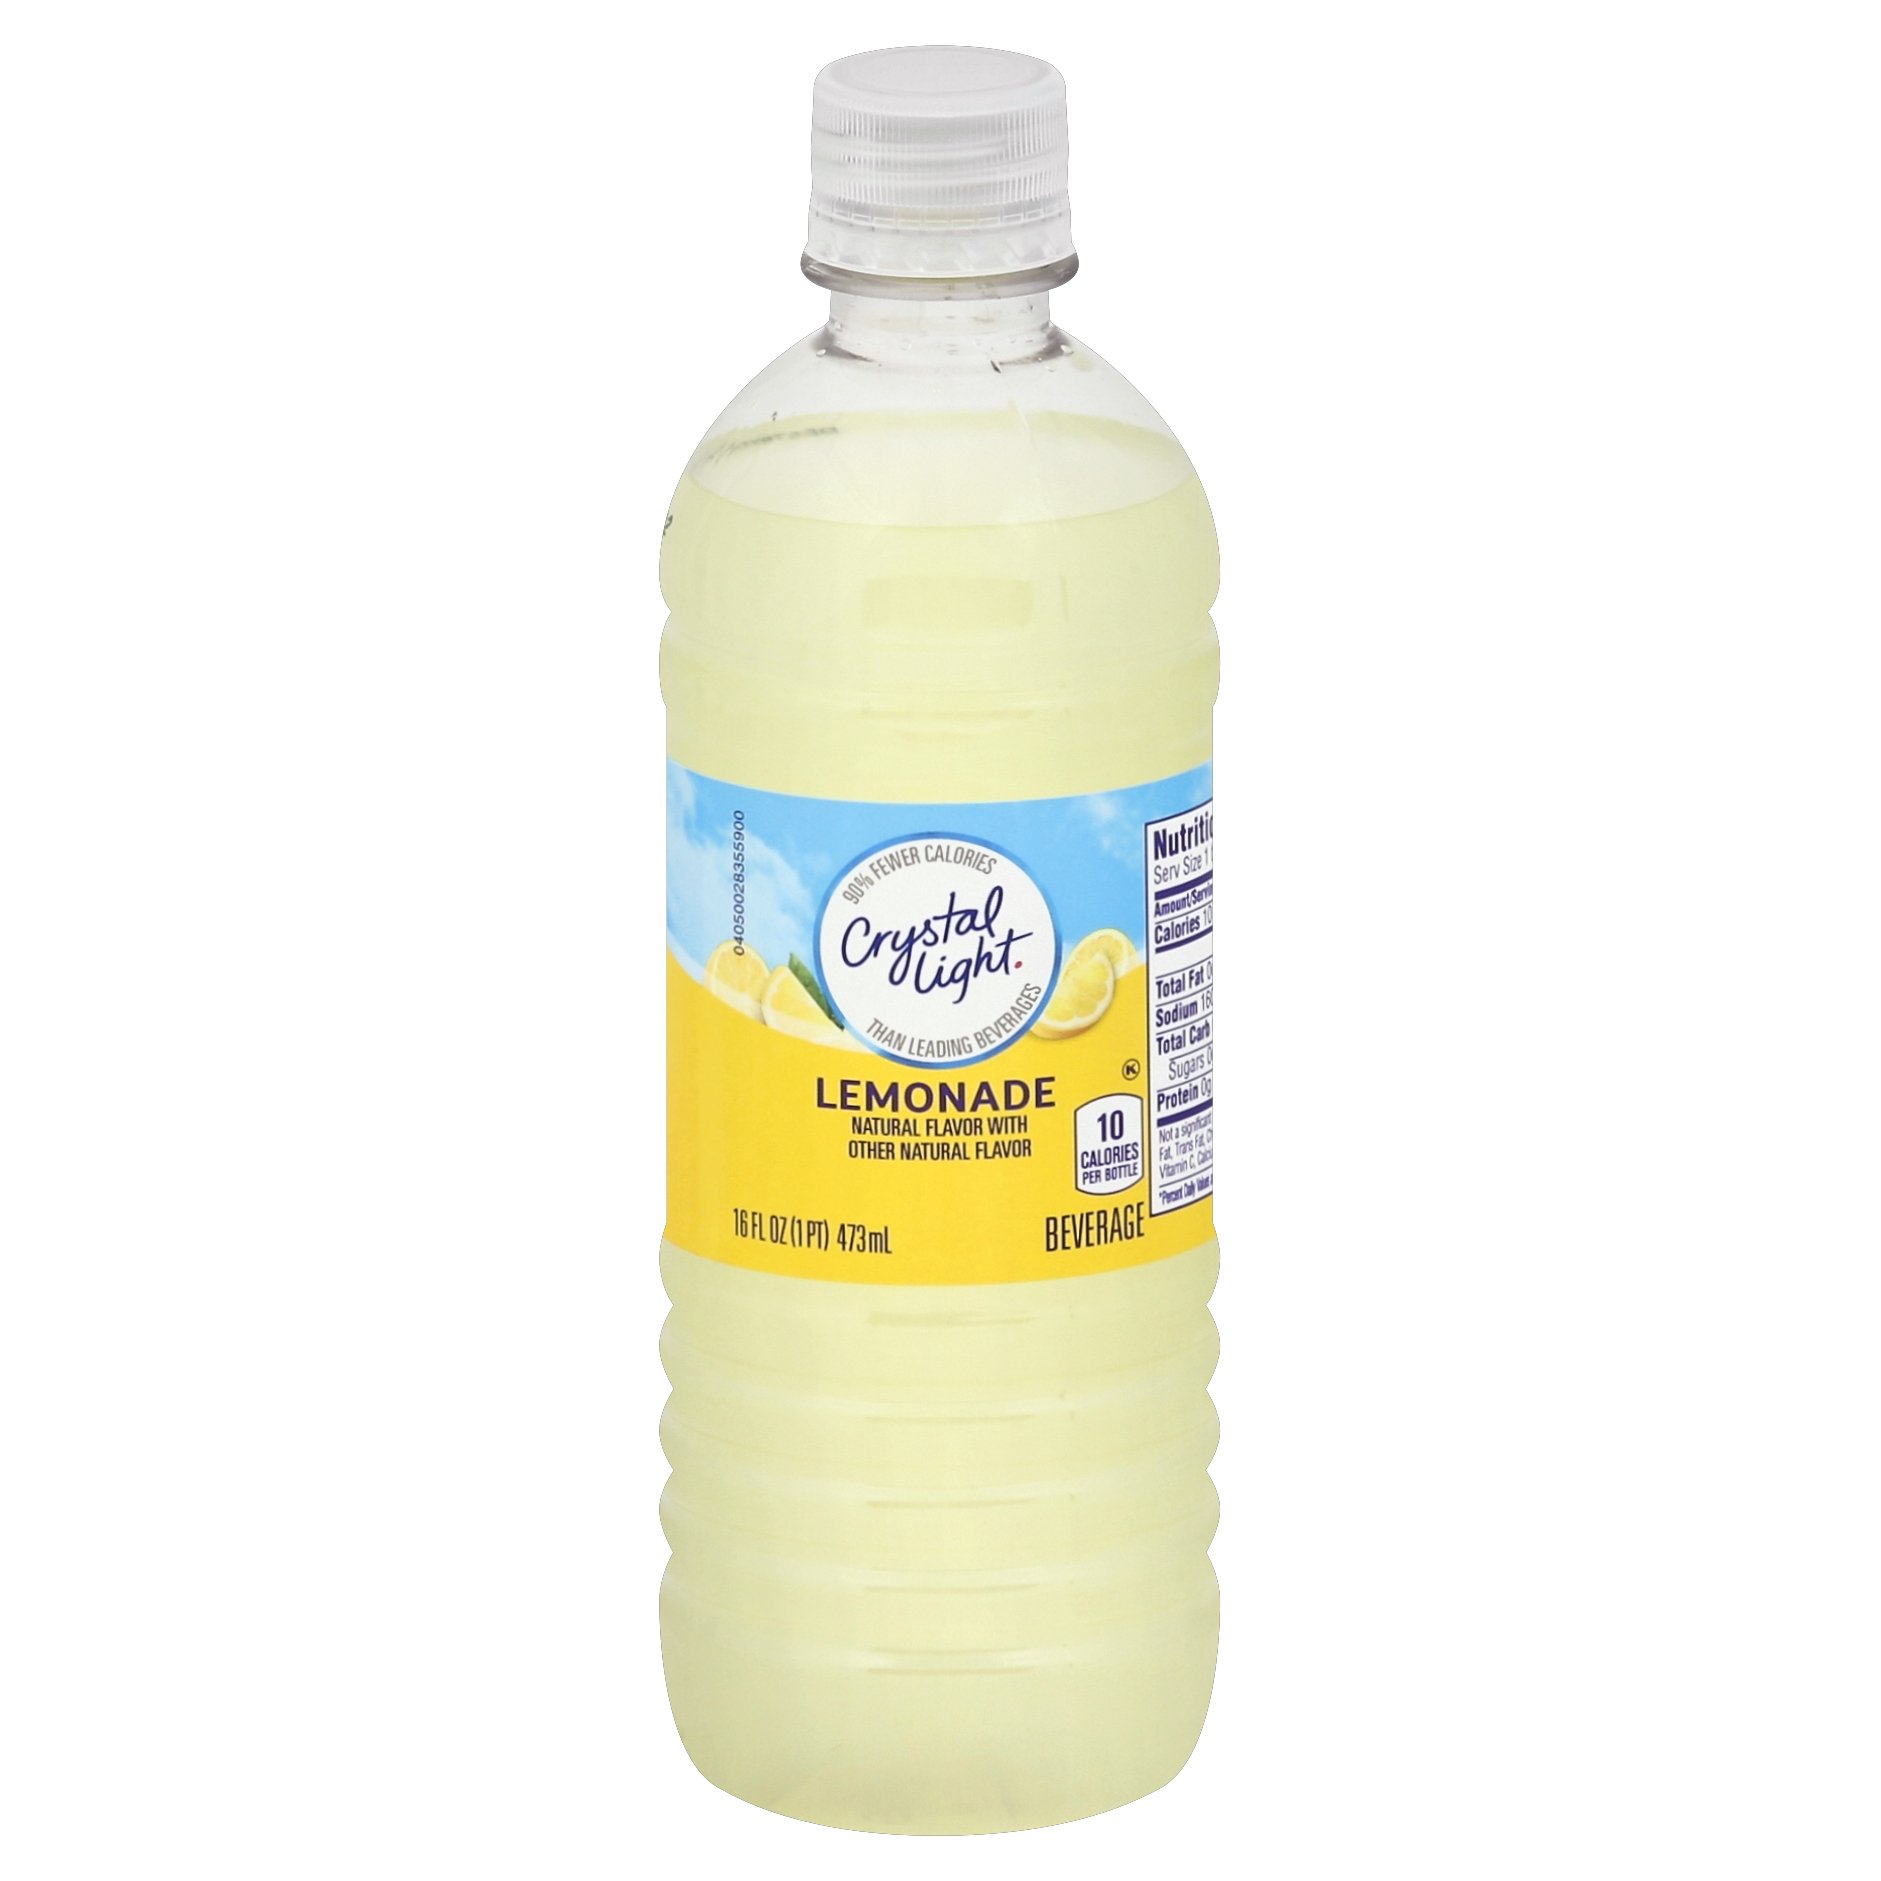 Crystal Light Ready to Drink Lemonade (16 oz Bottle, Pack of 24) by Crystal Light